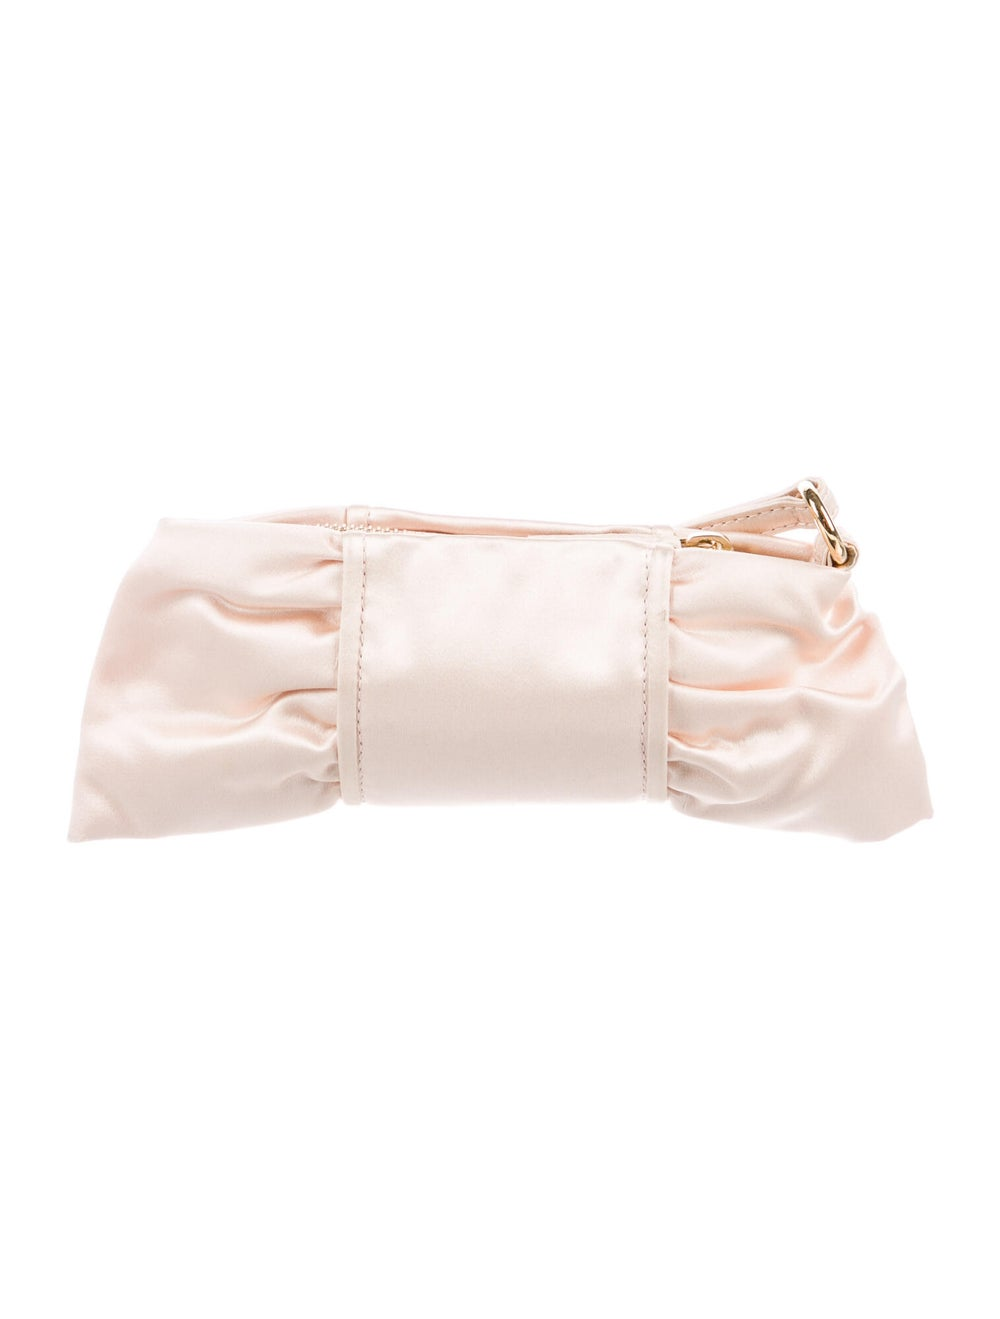 Valentino Satin Clutch w/ Tags Pink - image 4